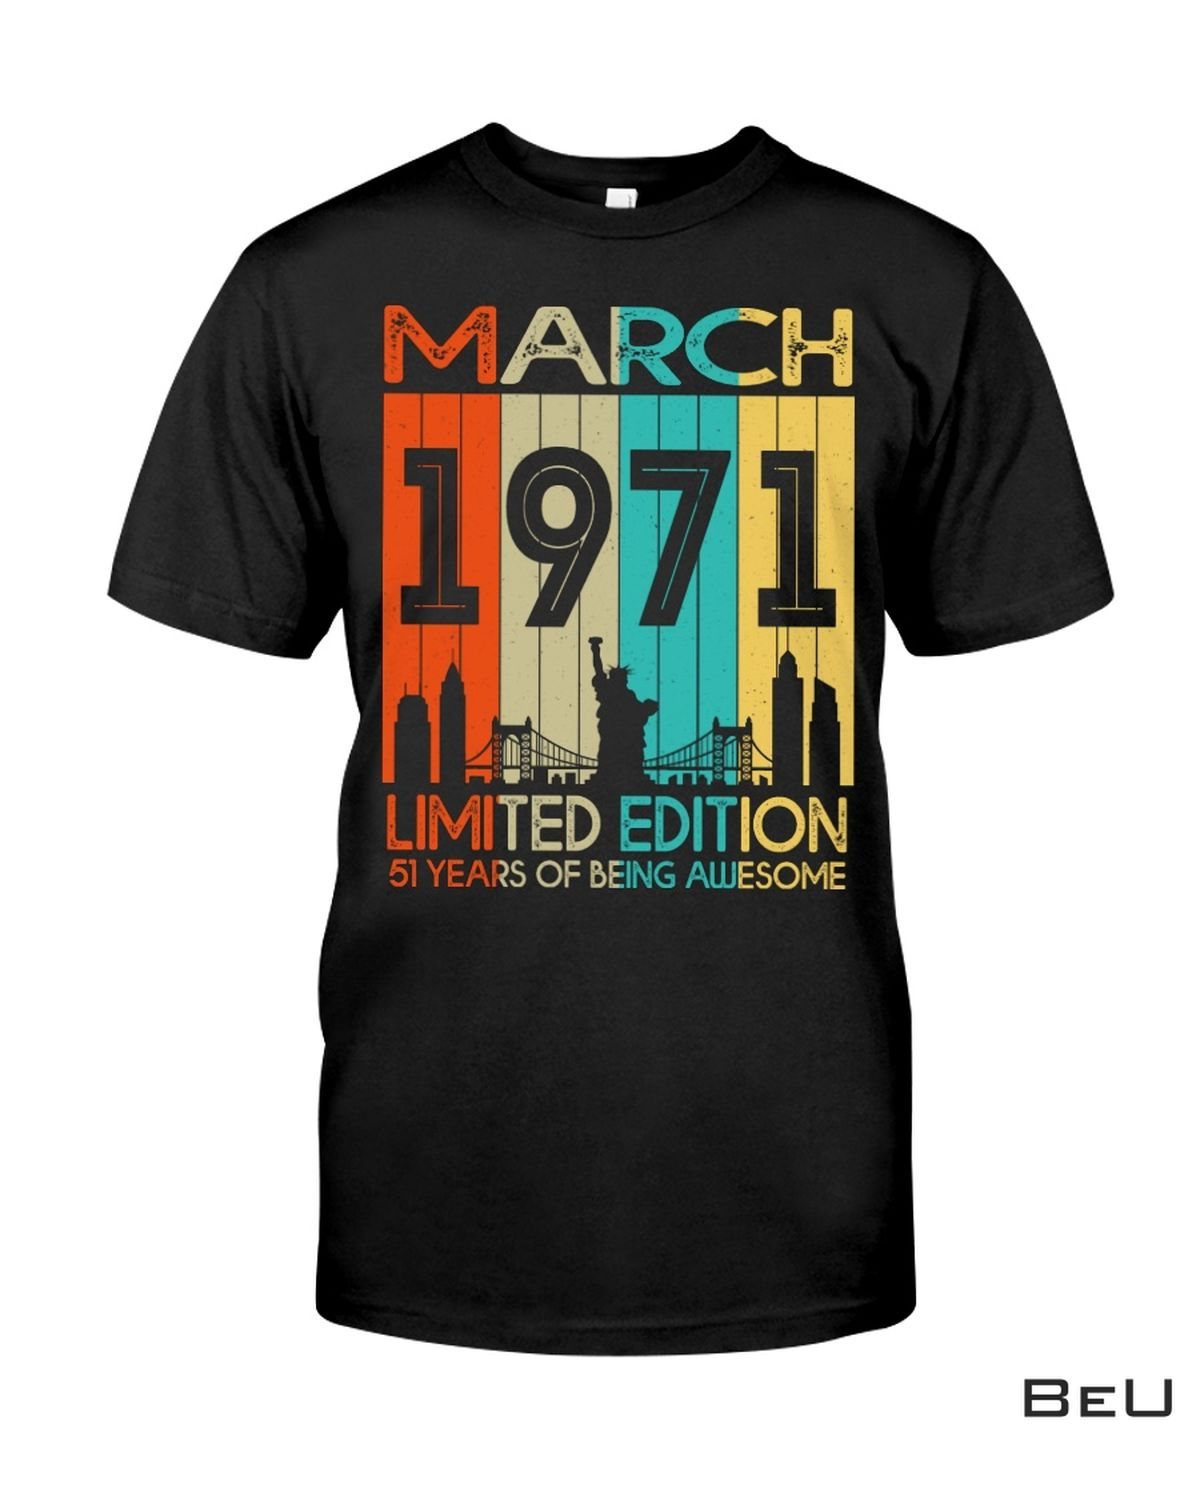 March 1971 Limited Edition 51 Years Of Being Awesome Shirt, hoodie